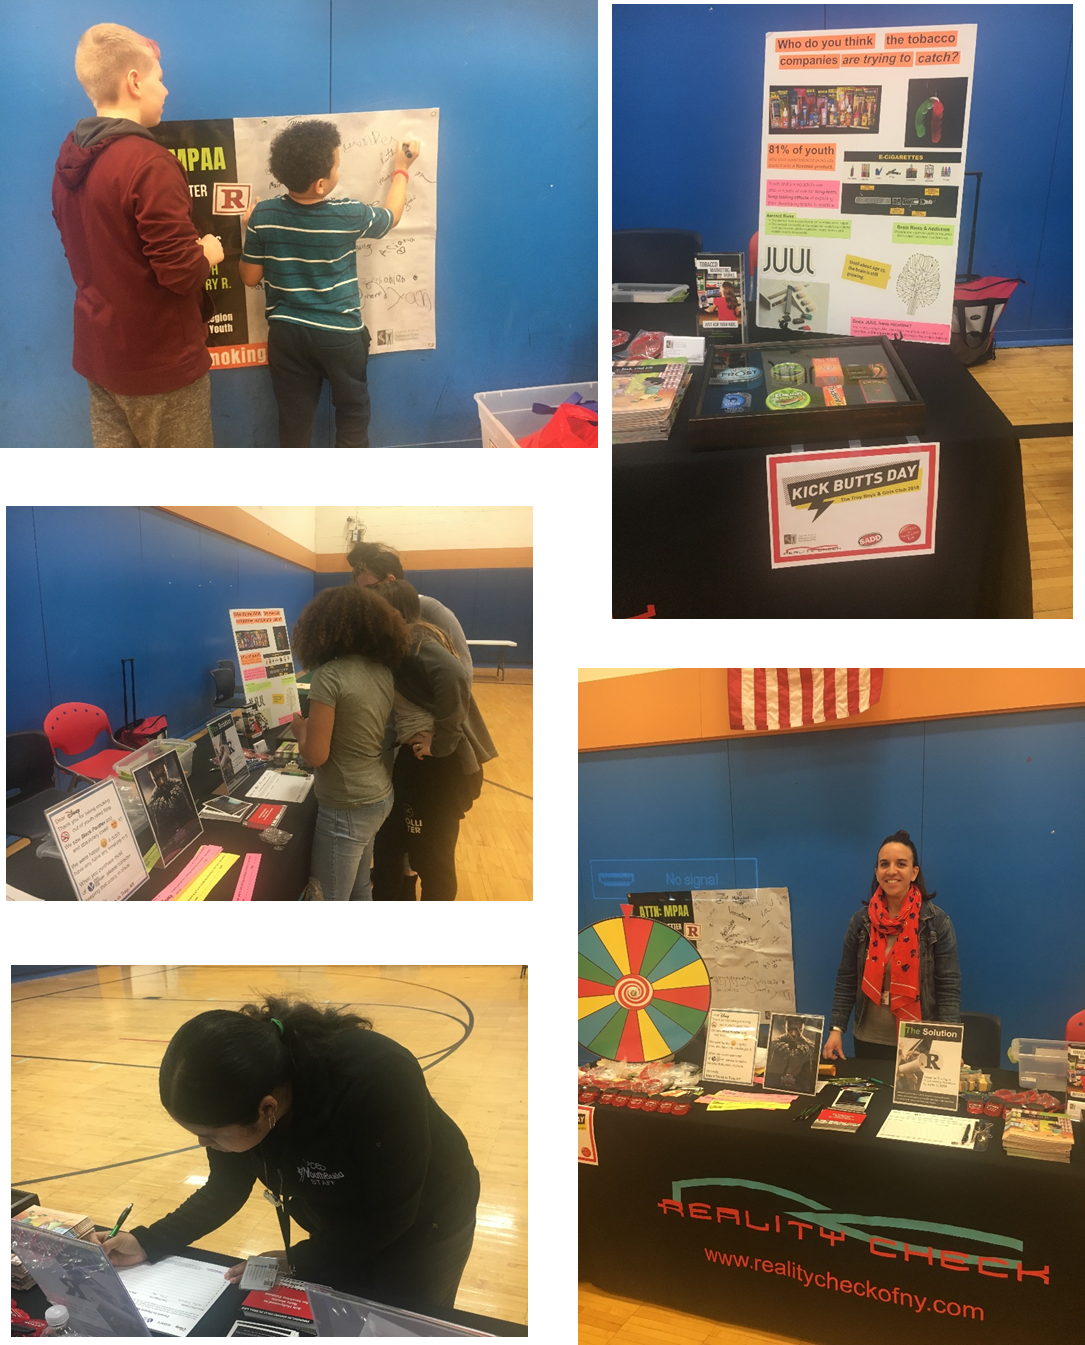 For Kick Butts Day on March 23rd, a table was set up to educate families and children about smoking depicted in the movies and tobacco marketing at the Mental Health Awareness Event held at the Troy Boys & Girls Club in Rensselaer County.